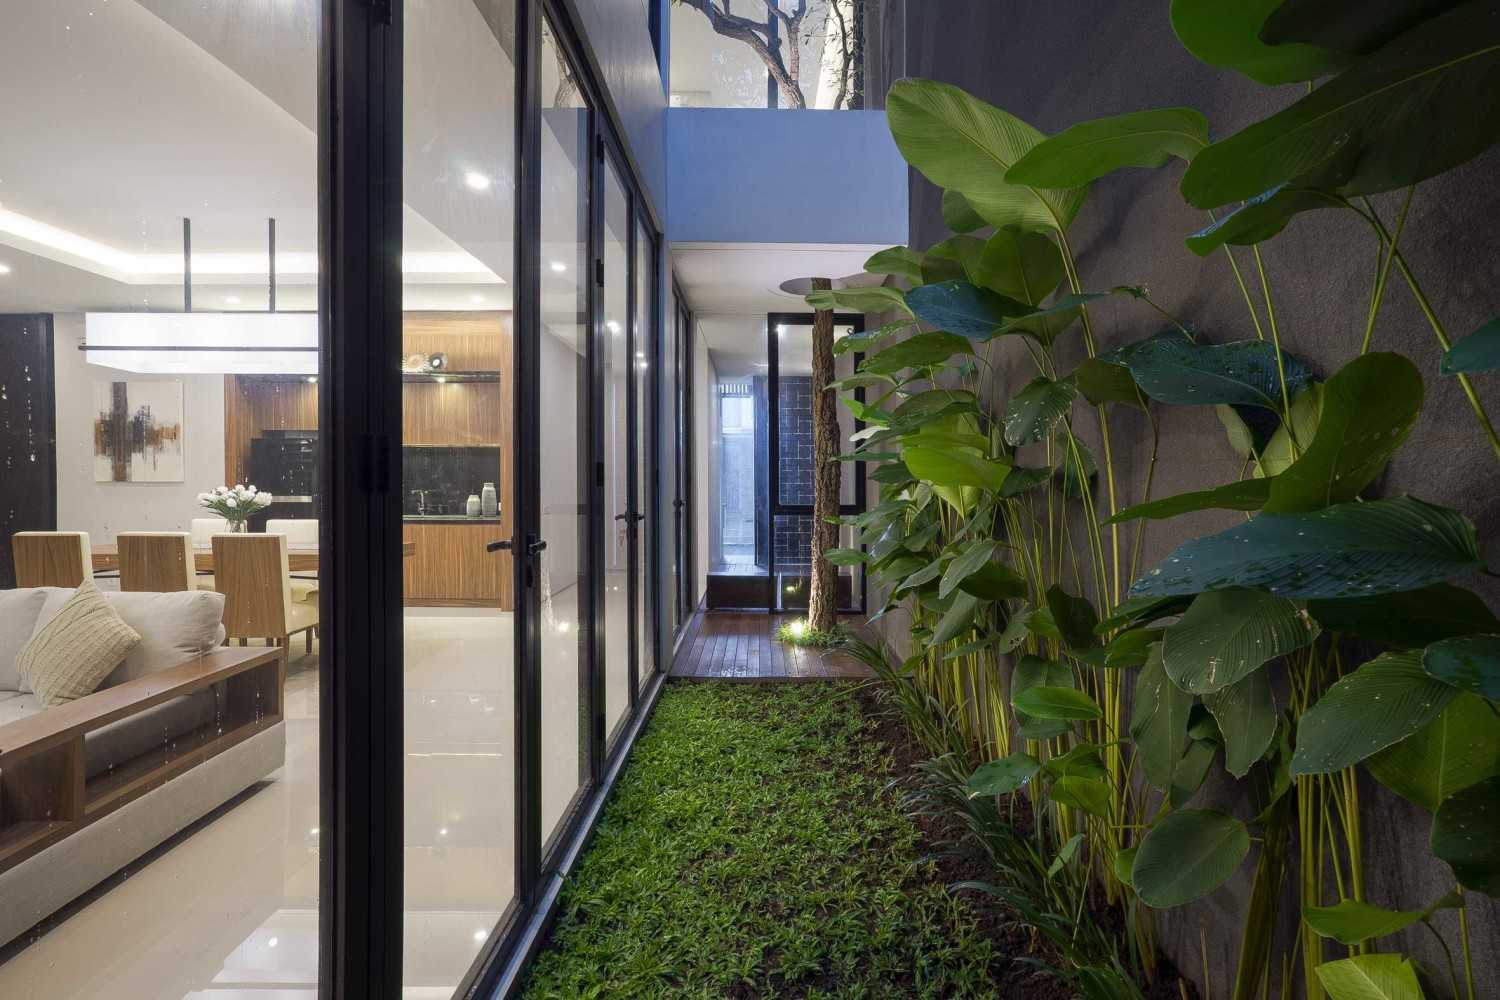 """Simple Projects Architecture """"s"""" House Pakuwon Indah, Surabaya - Indonesia Pakuwon Indah, Surabaya - Indonesia Garden Area  32988"""